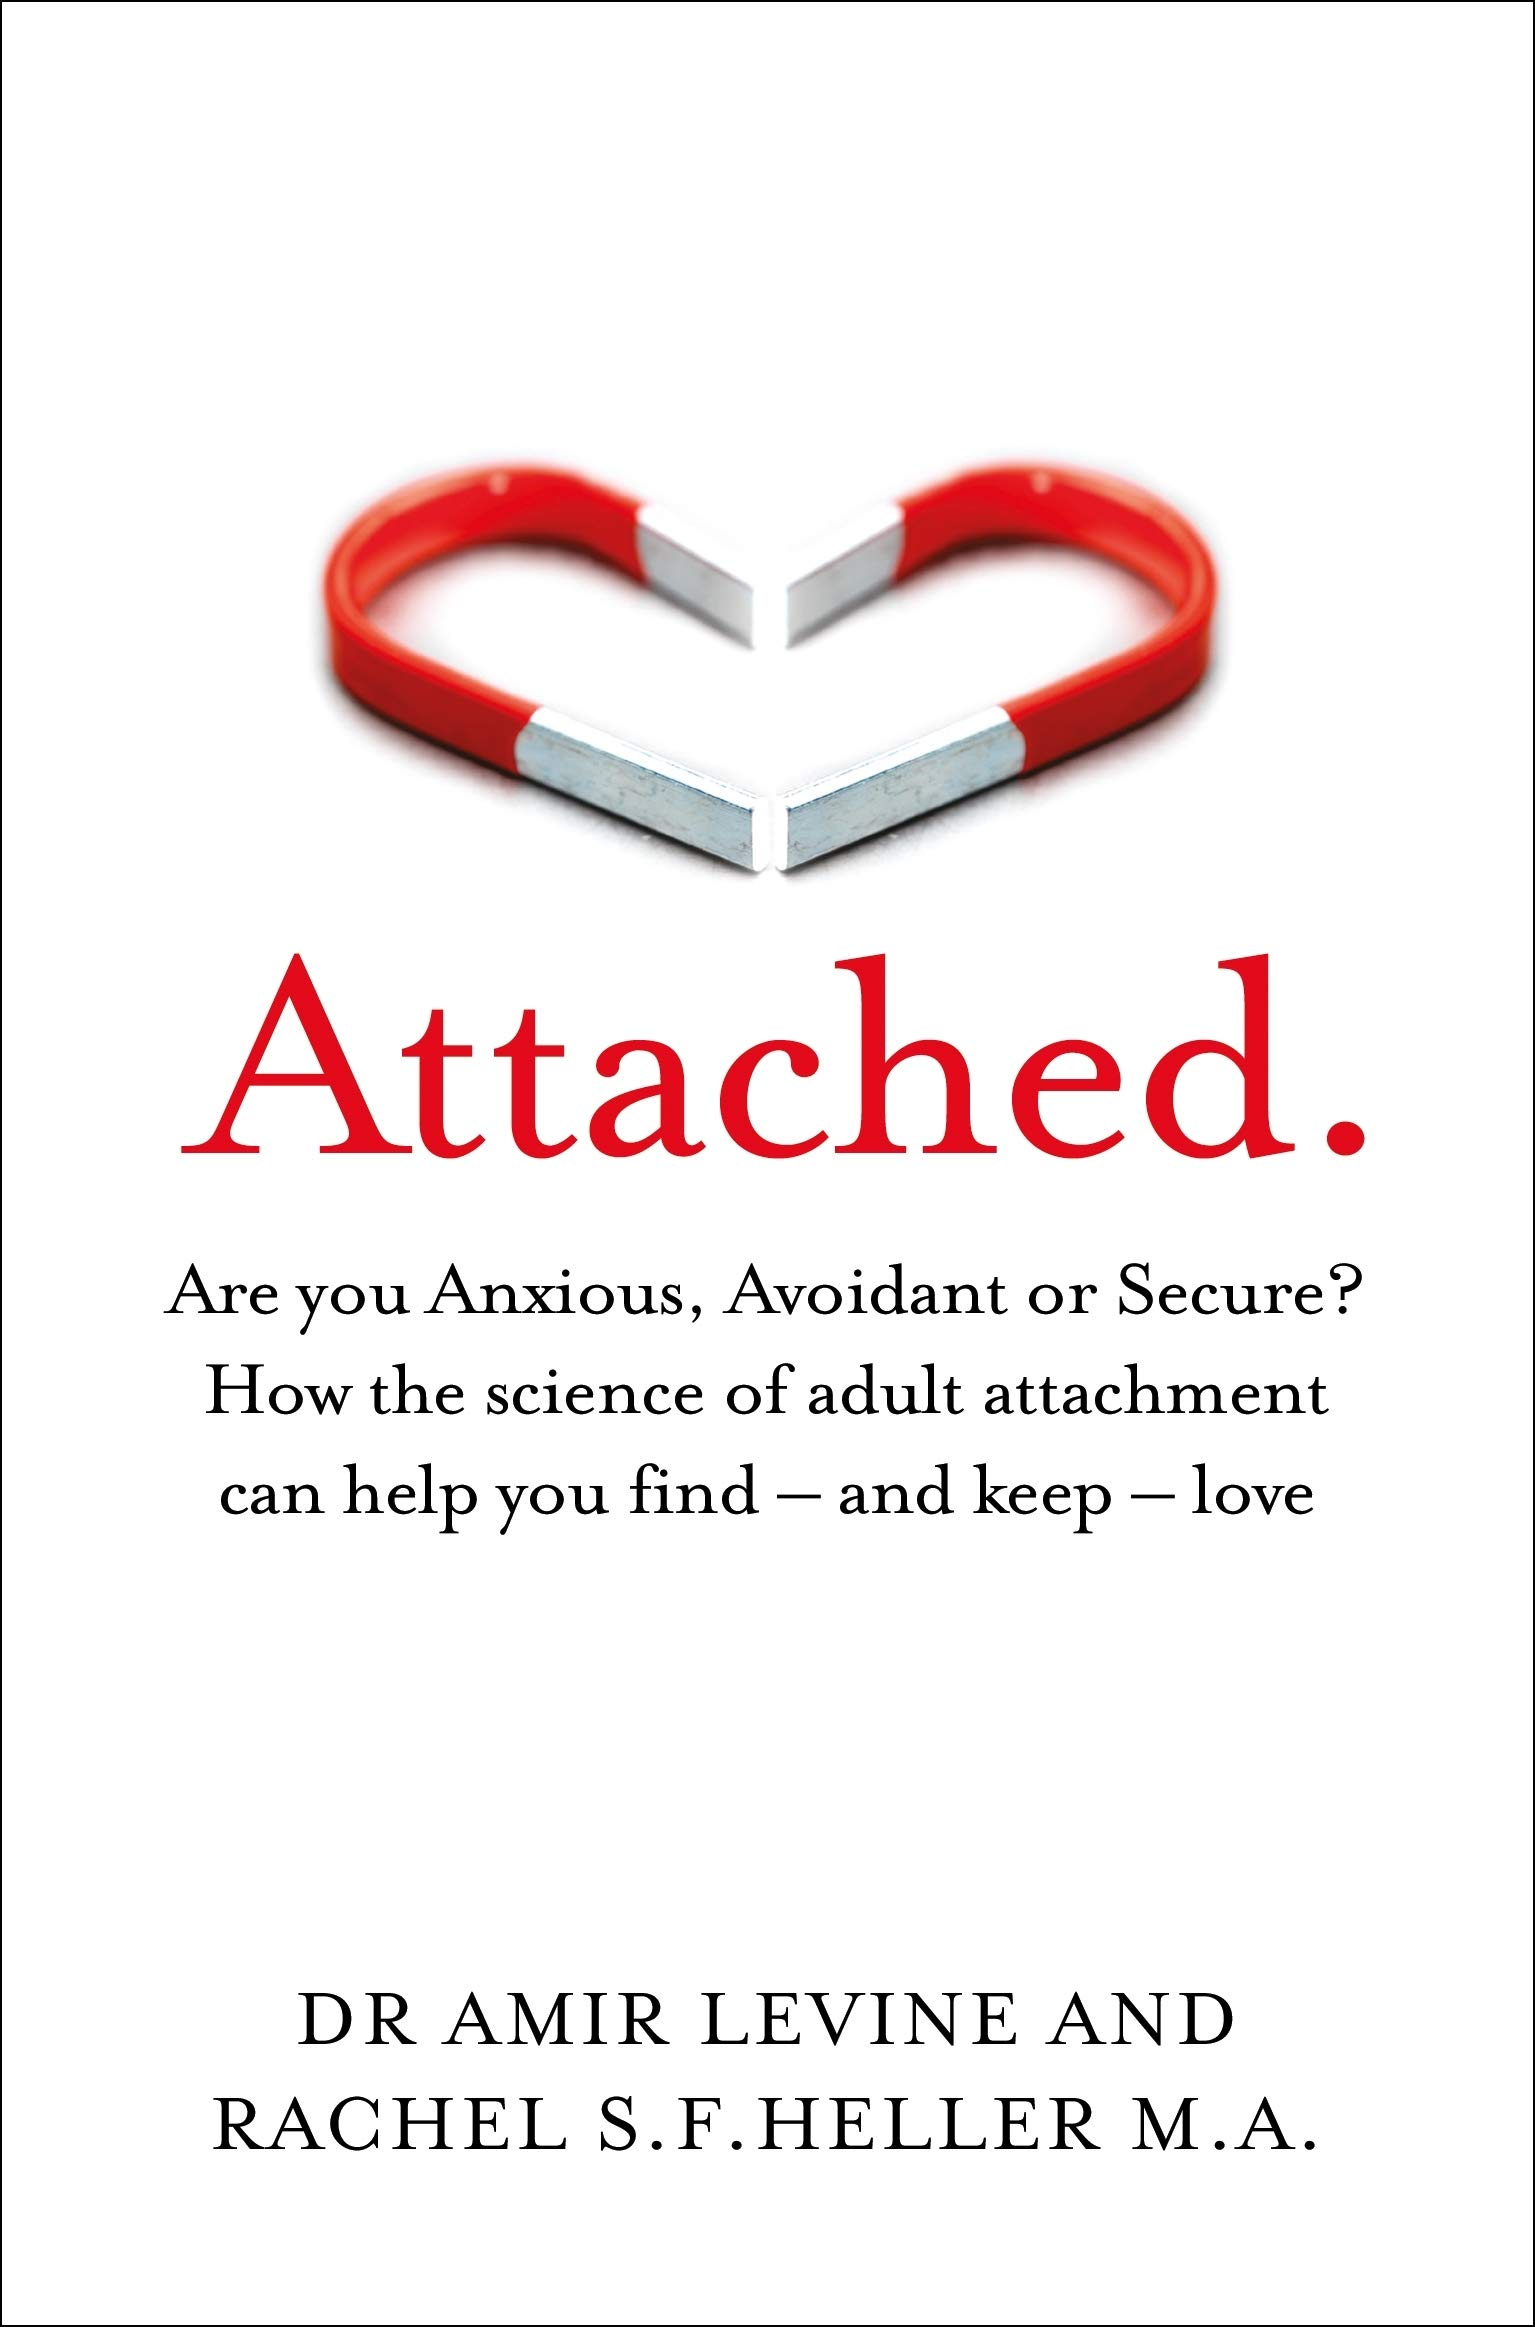 Attached: Are you Anxious, Avoidant or Secure? How the science of adult attachment can help you find – and keep – love by Amir Levine, Rachel Heller